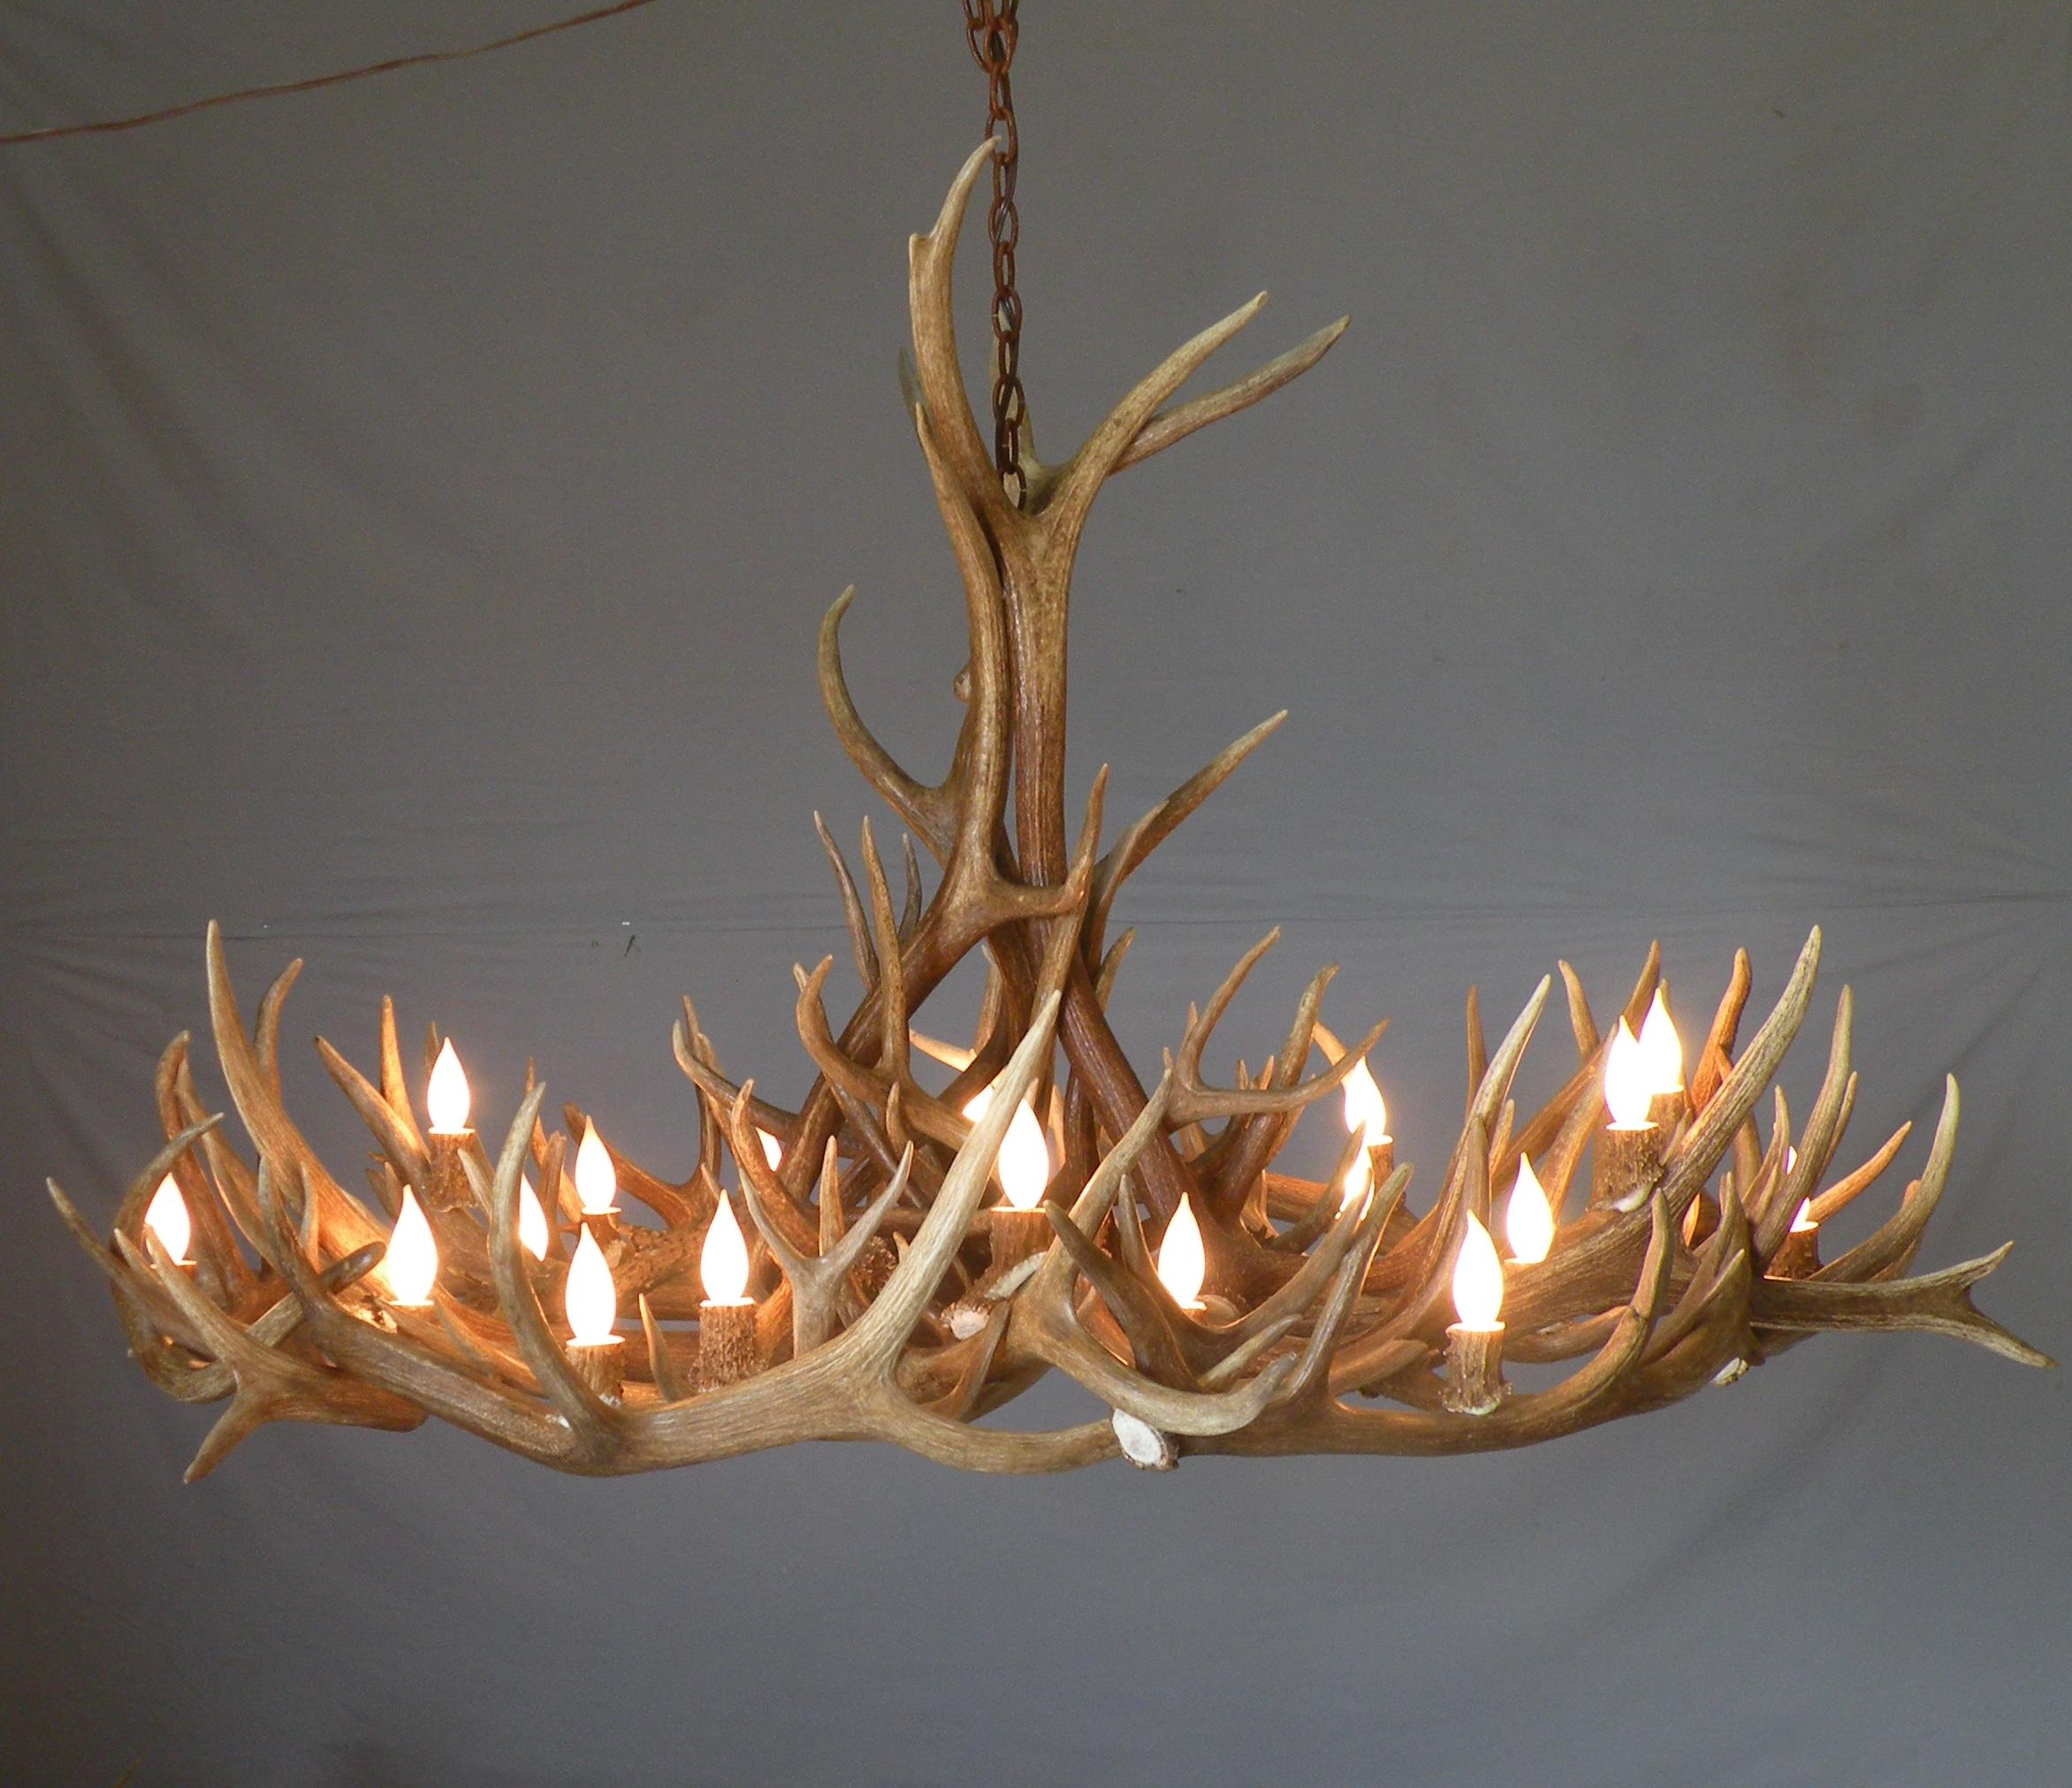 Antler Chandeliers Wdc Returning Artist Peak Antlers Accents Within Unusual Chandeliers (Image 3 of 15)